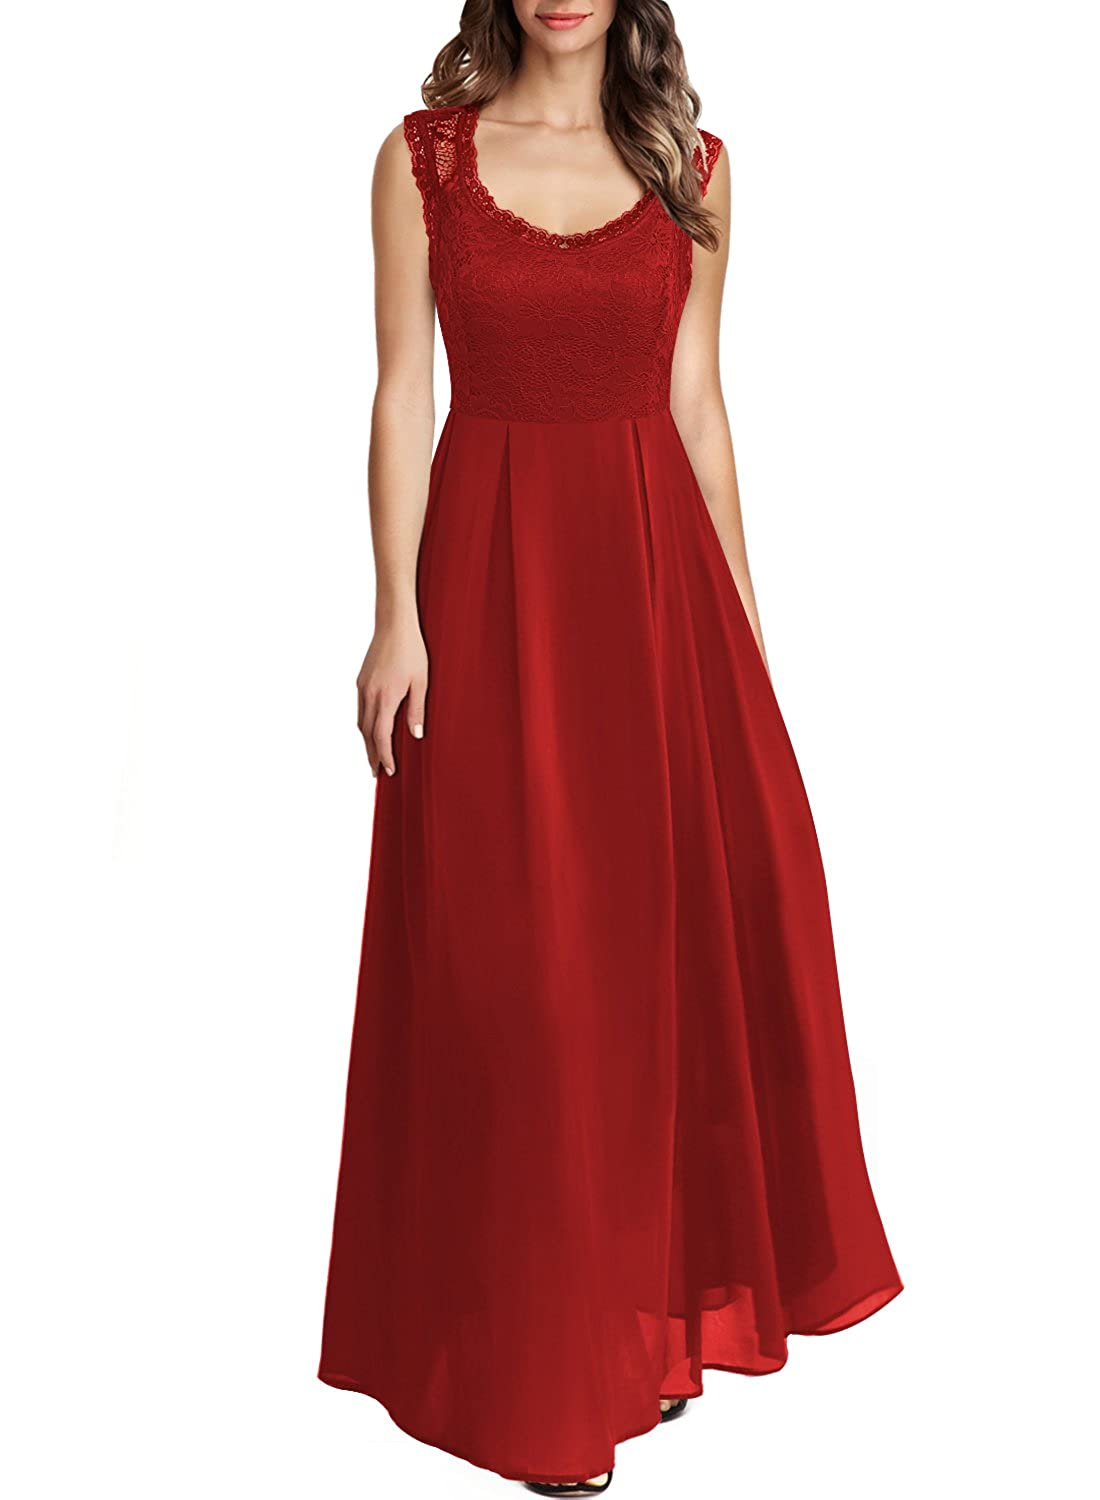 b29f766f2d3 We suggest go one or two size up. There s not much give in the fabric up  top. Bust waist size is the most important reference for this dress.